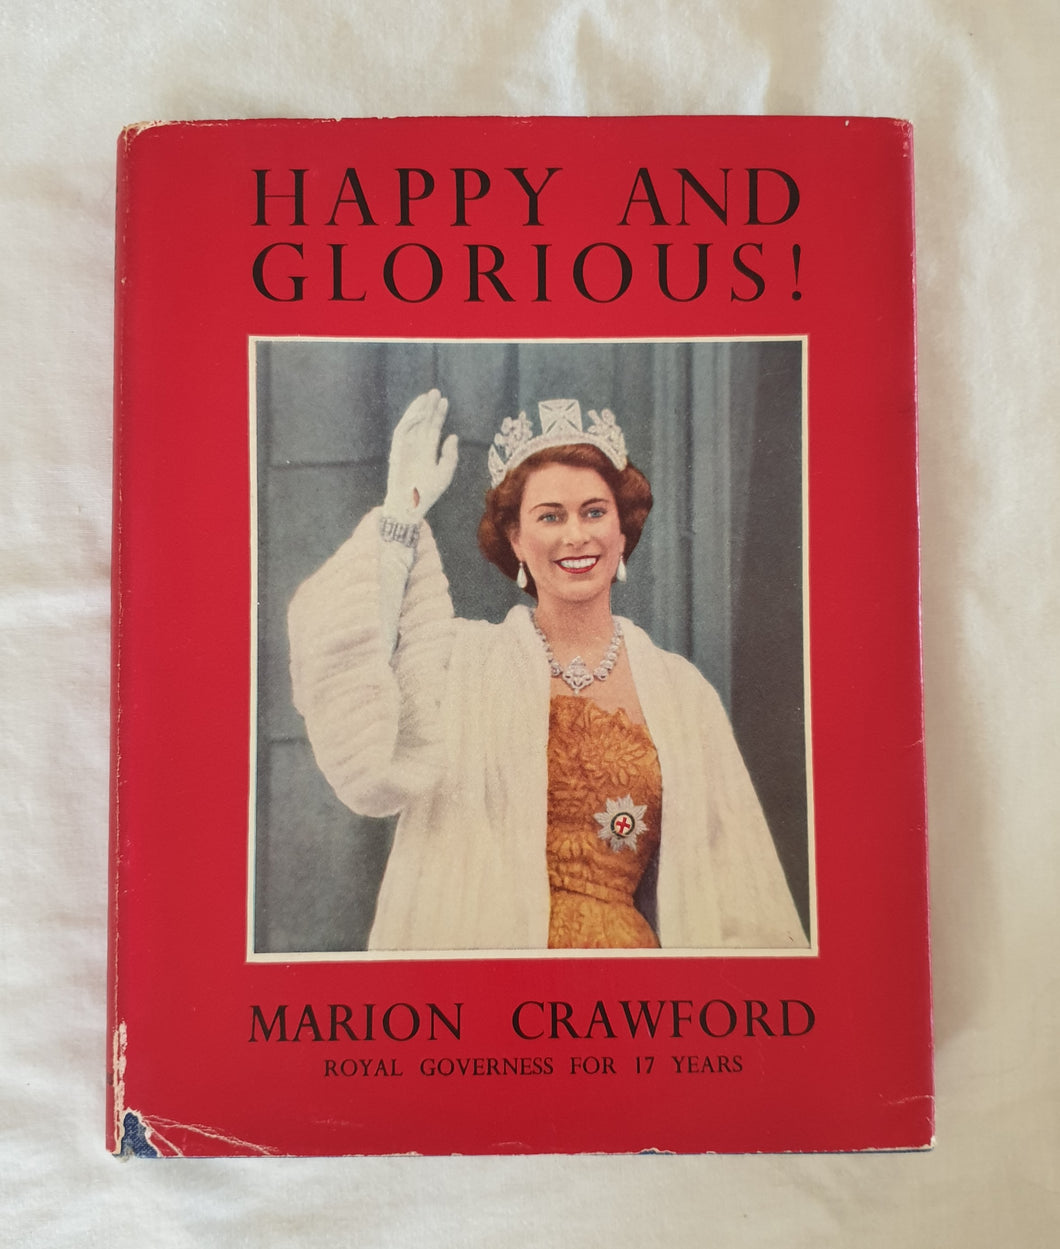 Happy and Glorious! by Marion Crawford